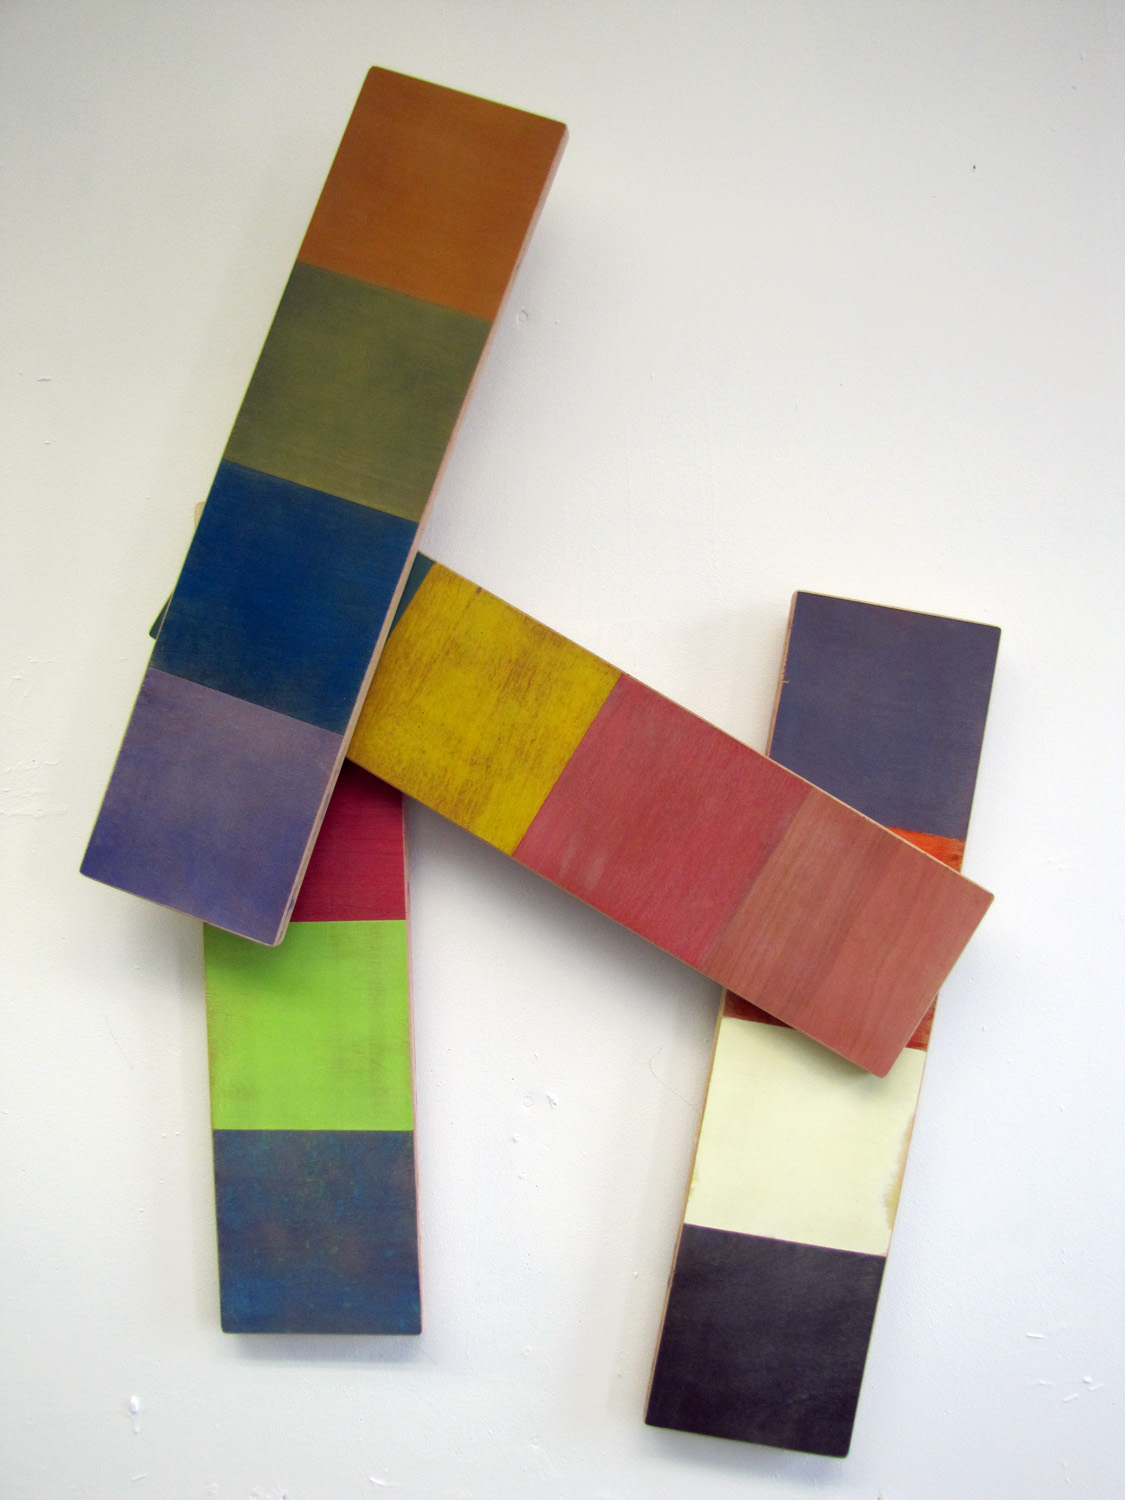 Reconfiguration _ Tempera on Birch Panel _ Dimensions Variable _ 2013